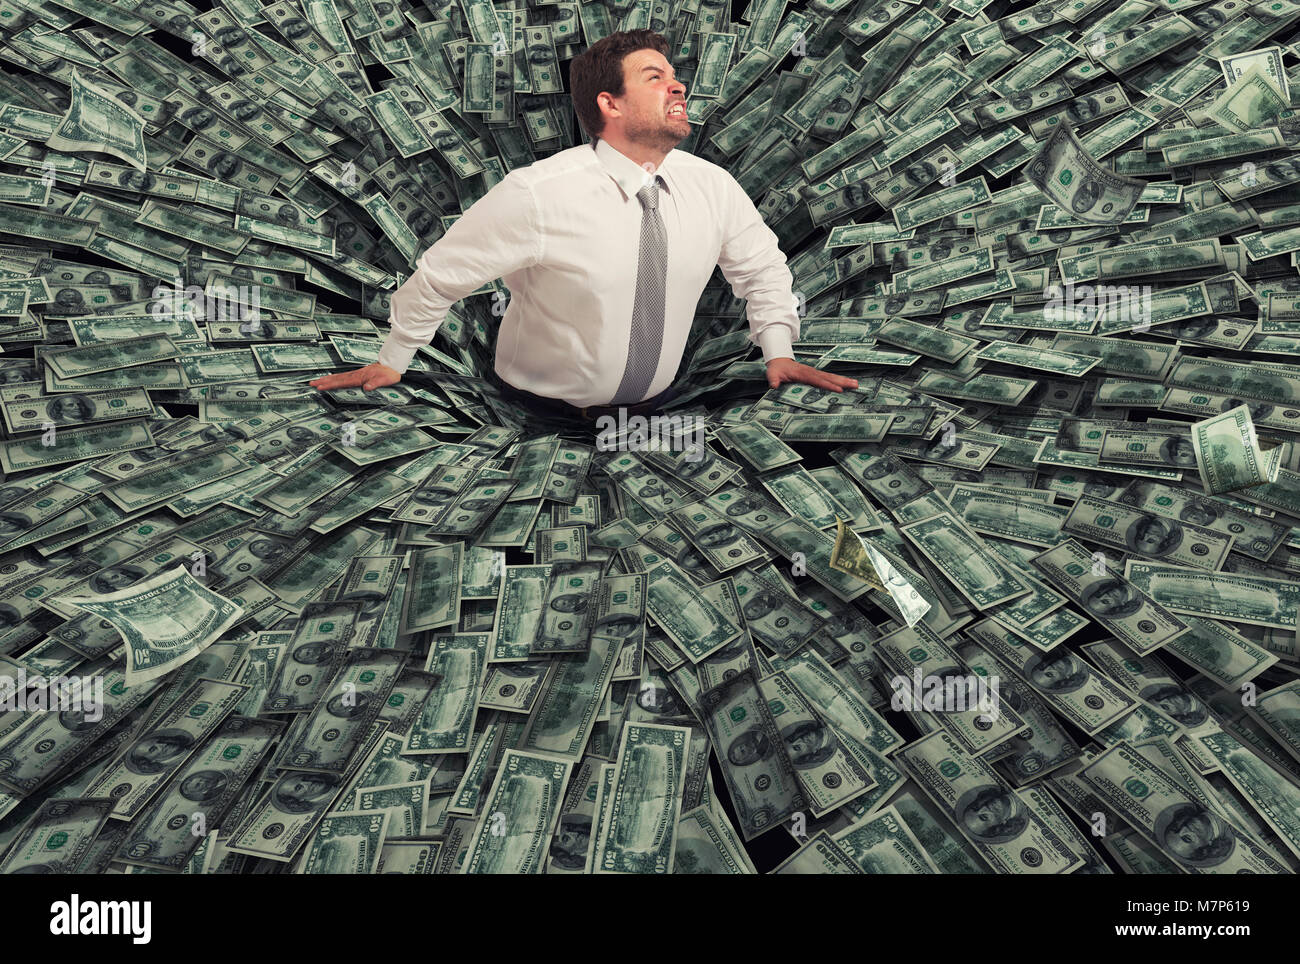 Businessman swallowed by a black hole of money. Concept of failure and economic crisis - Stock Image